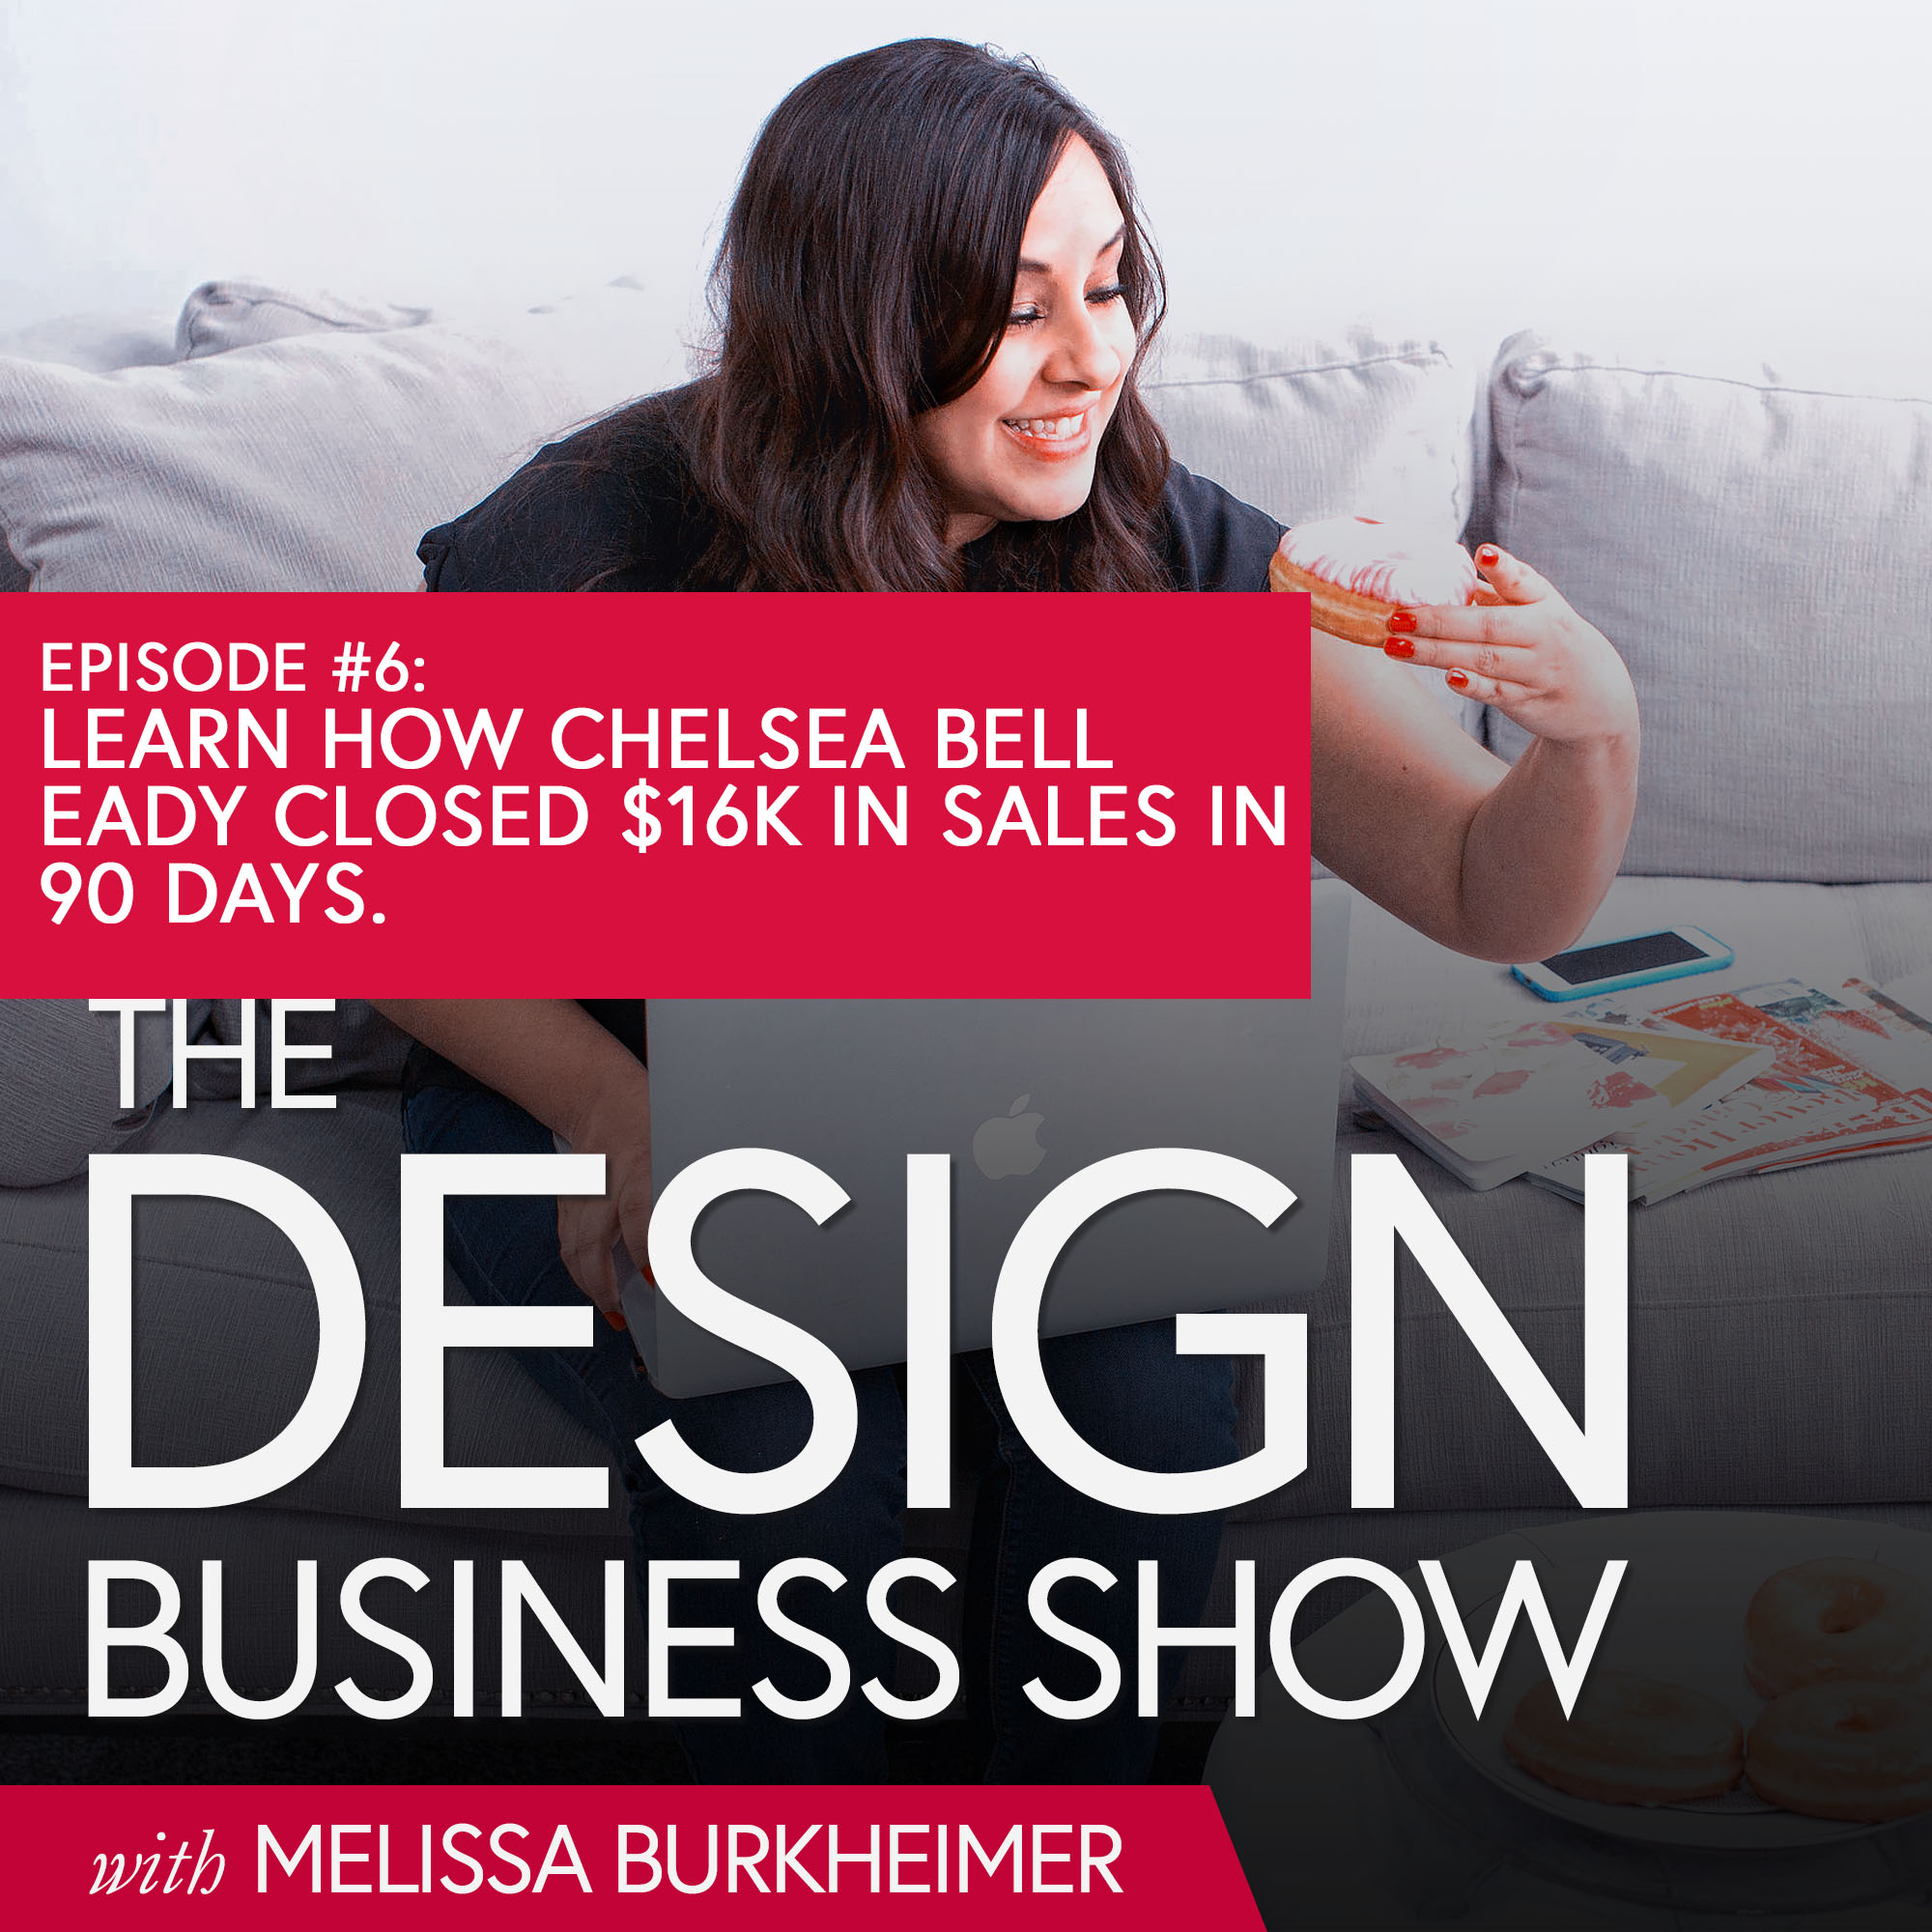 Learn from fellow designer Chelsea Bell Eady who started a brand new design business after graduating with a new degree in May of this year